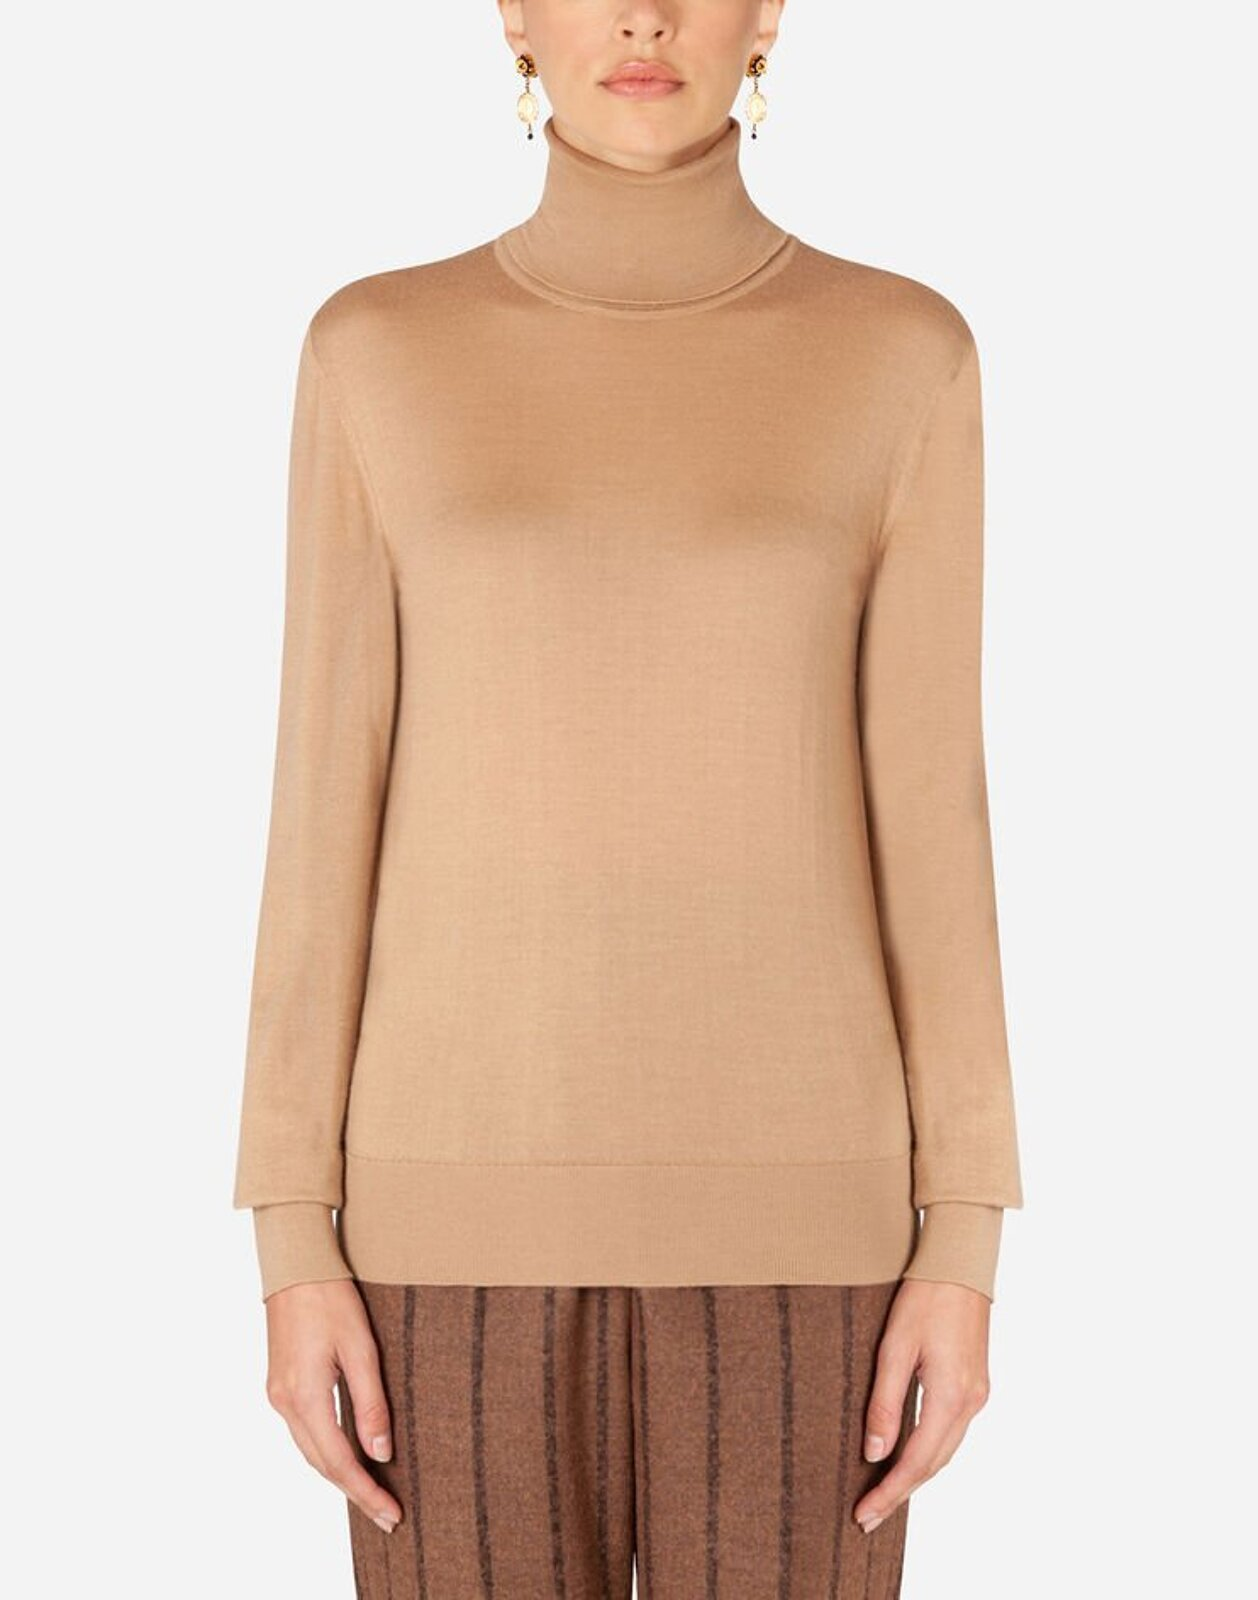 High neck sweater in cashmere and silk - Dolce & Gabbana